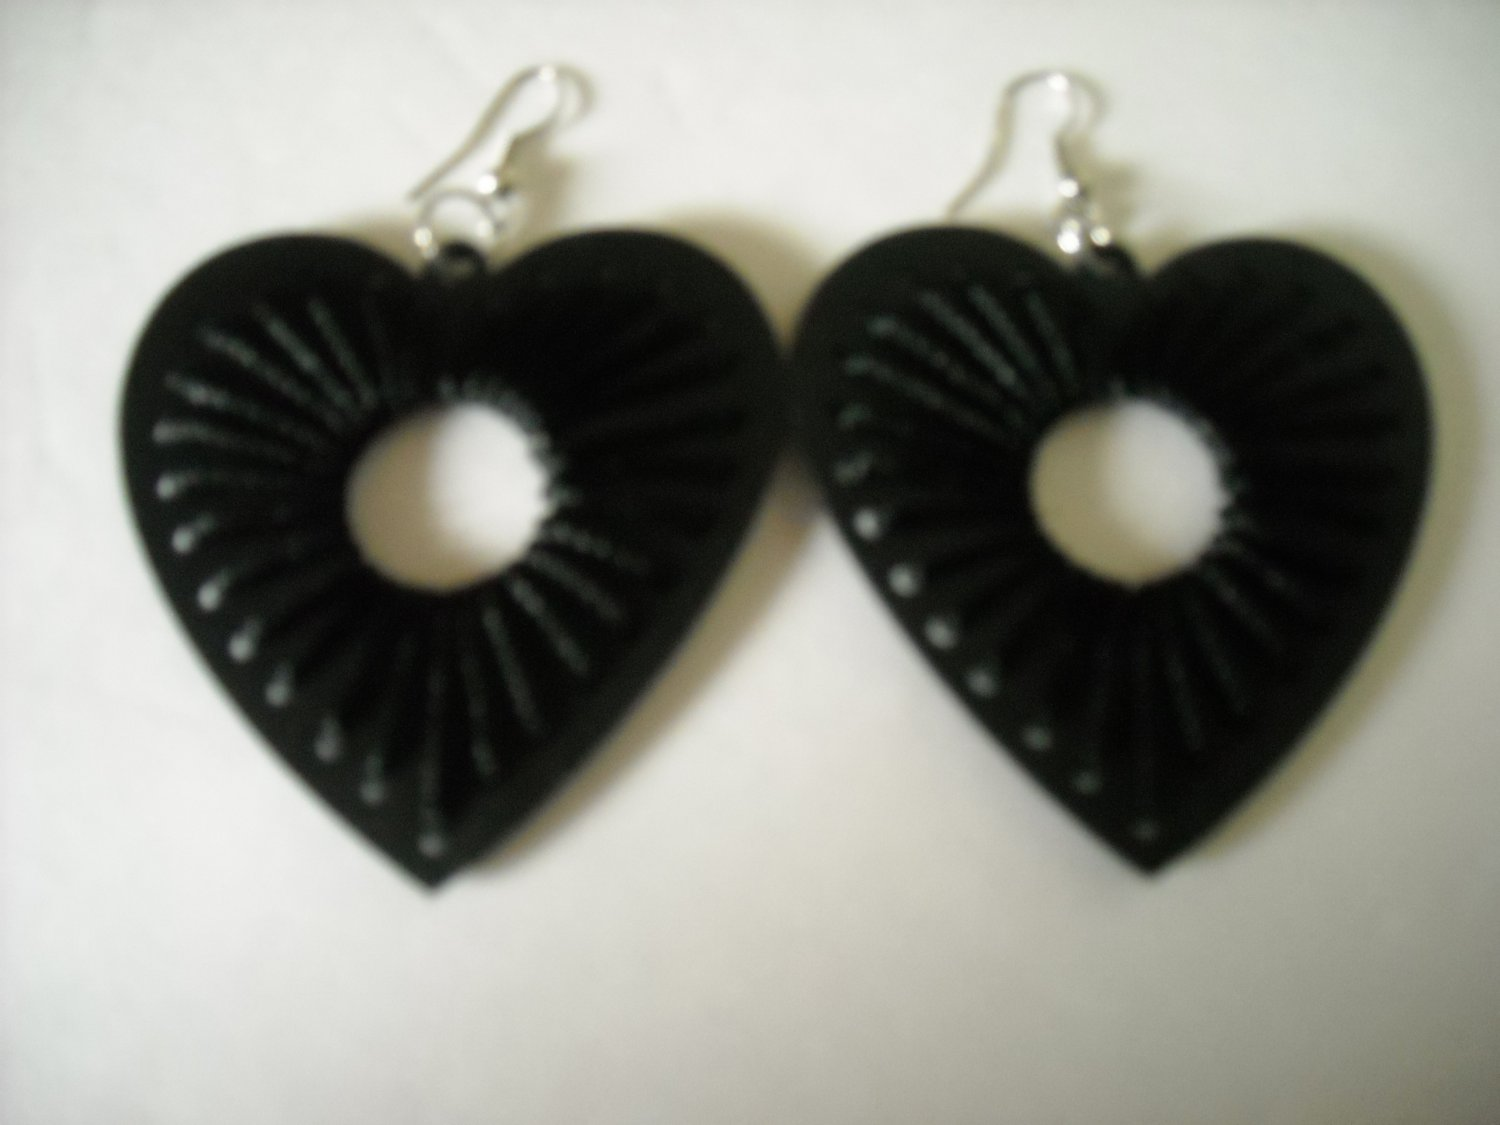 HEART SHAPE BLACK WOOD EARRINGS (NEW)